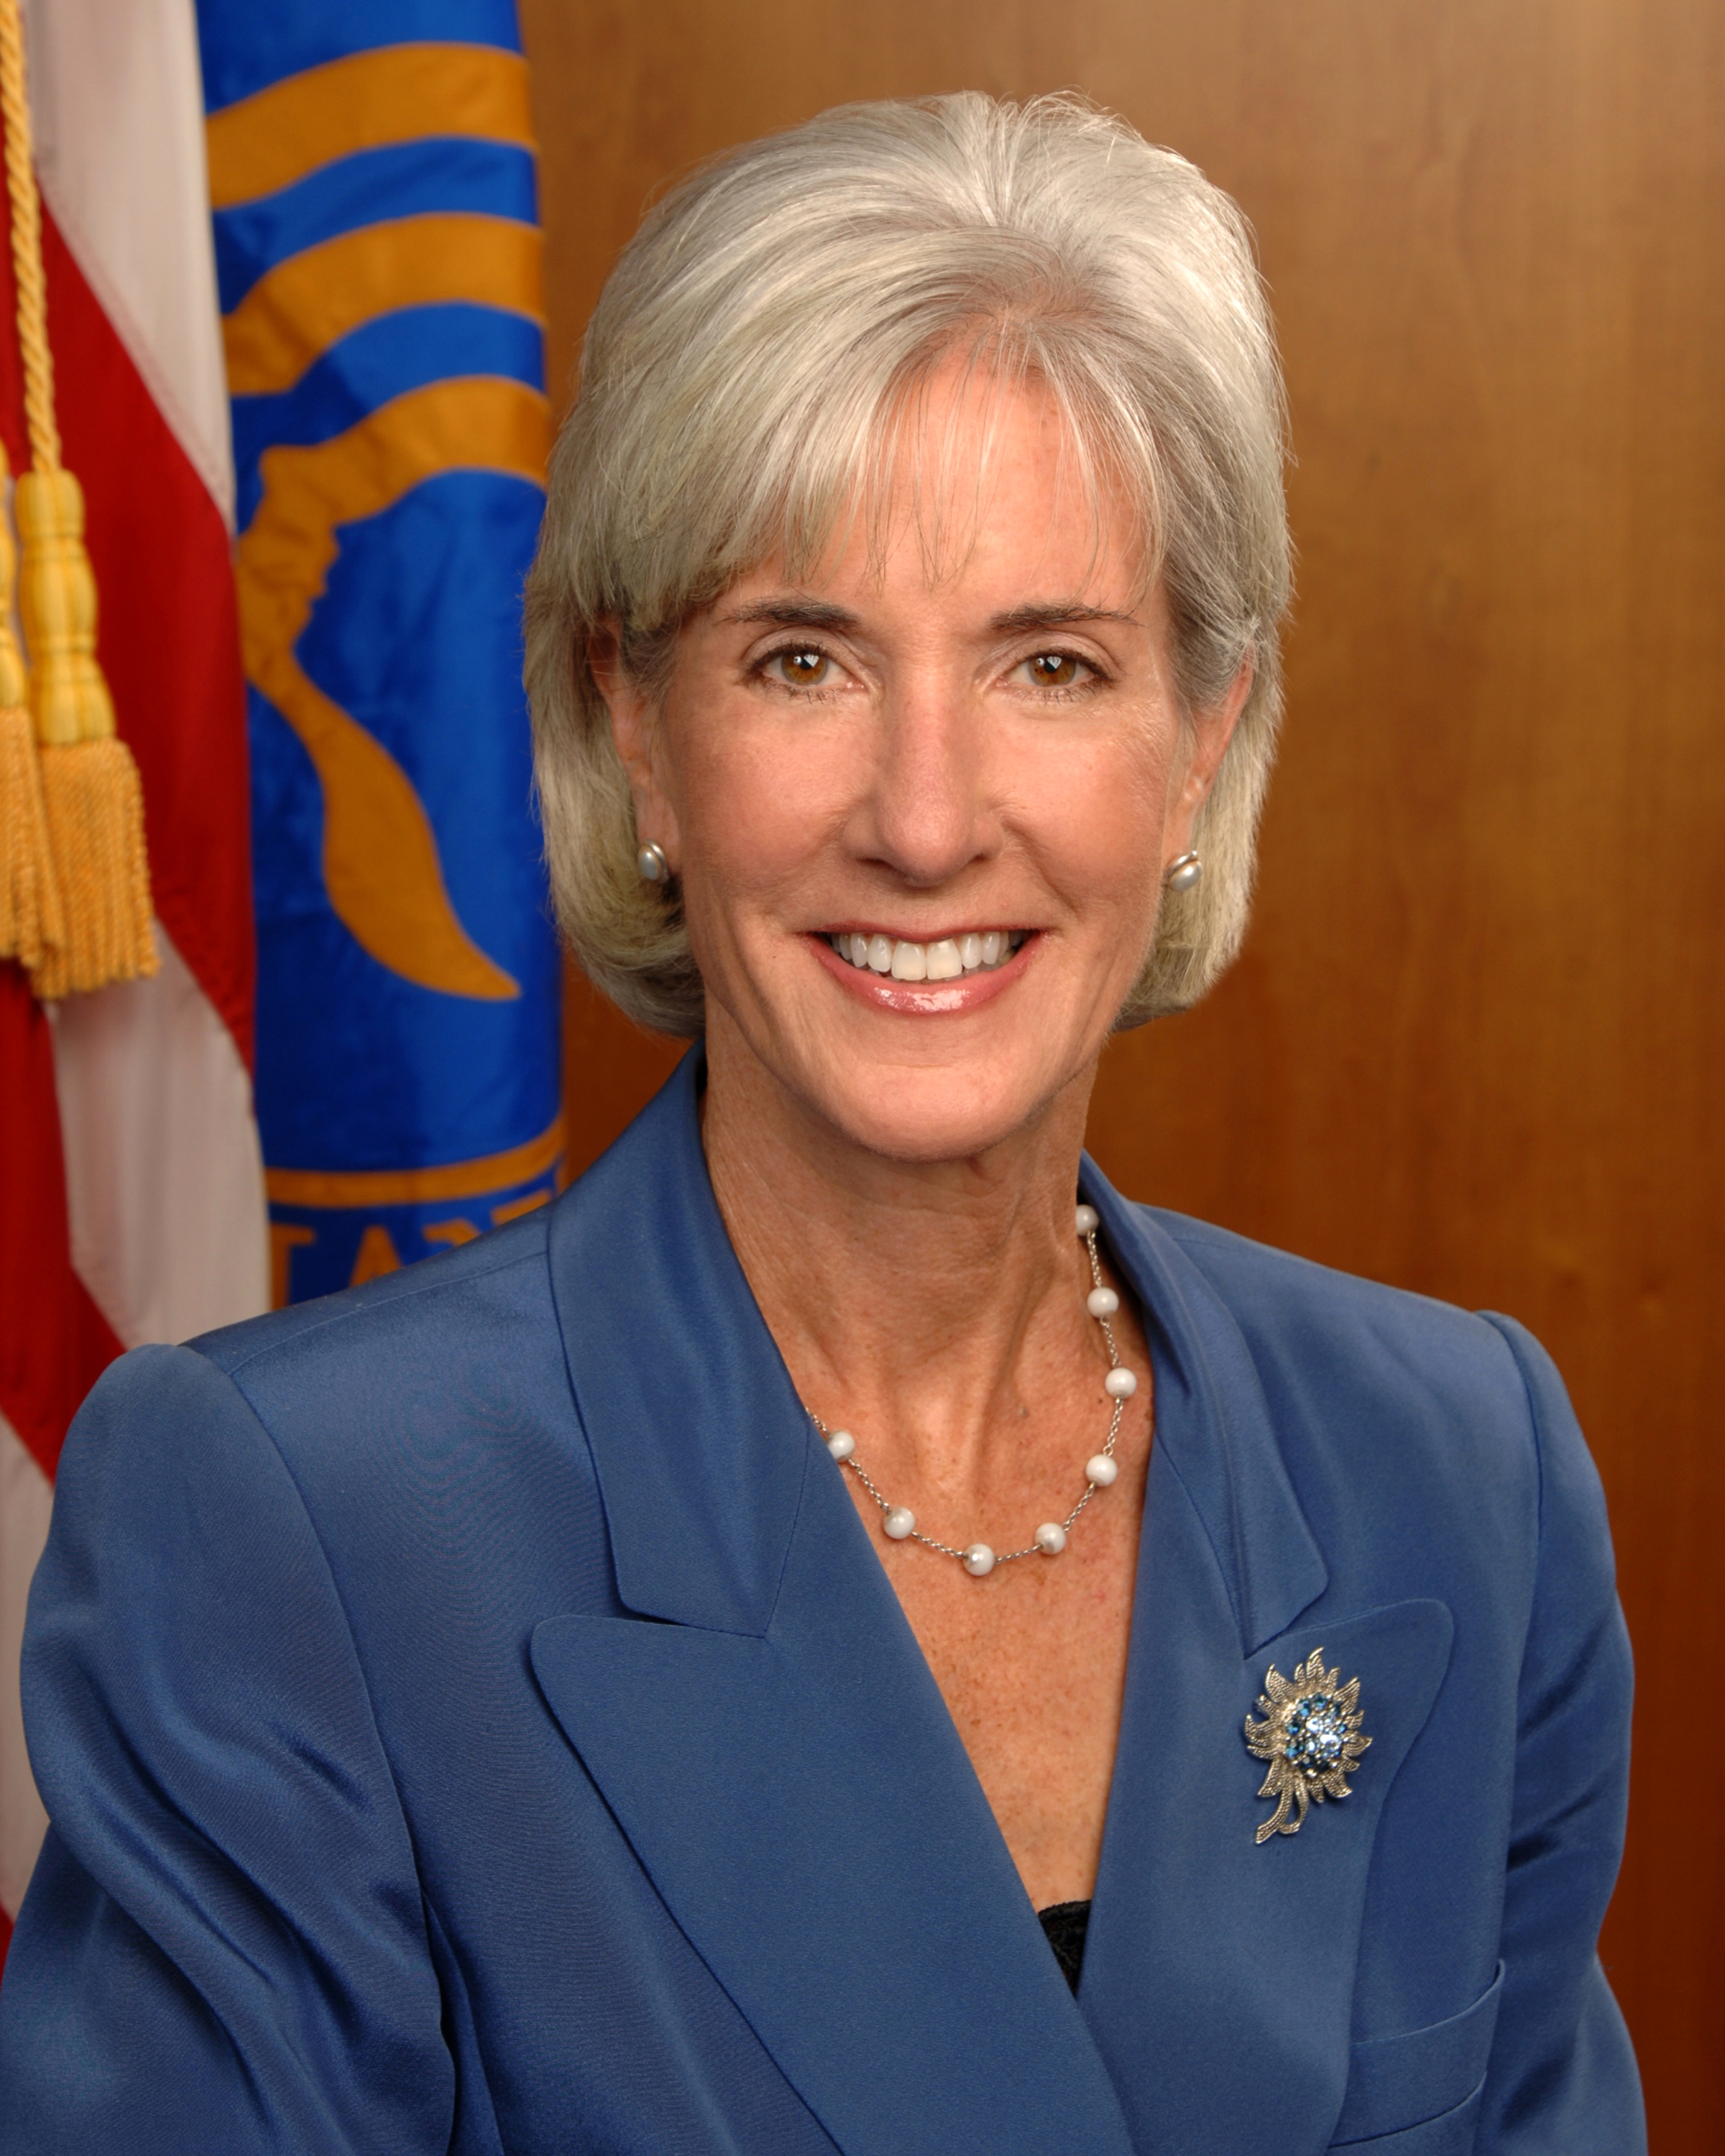 https://i2.wp.com/upload.wikimedia.org/wikipedia/commons/5/5c/Kathleen_Sebelius_official_portrait.jpg